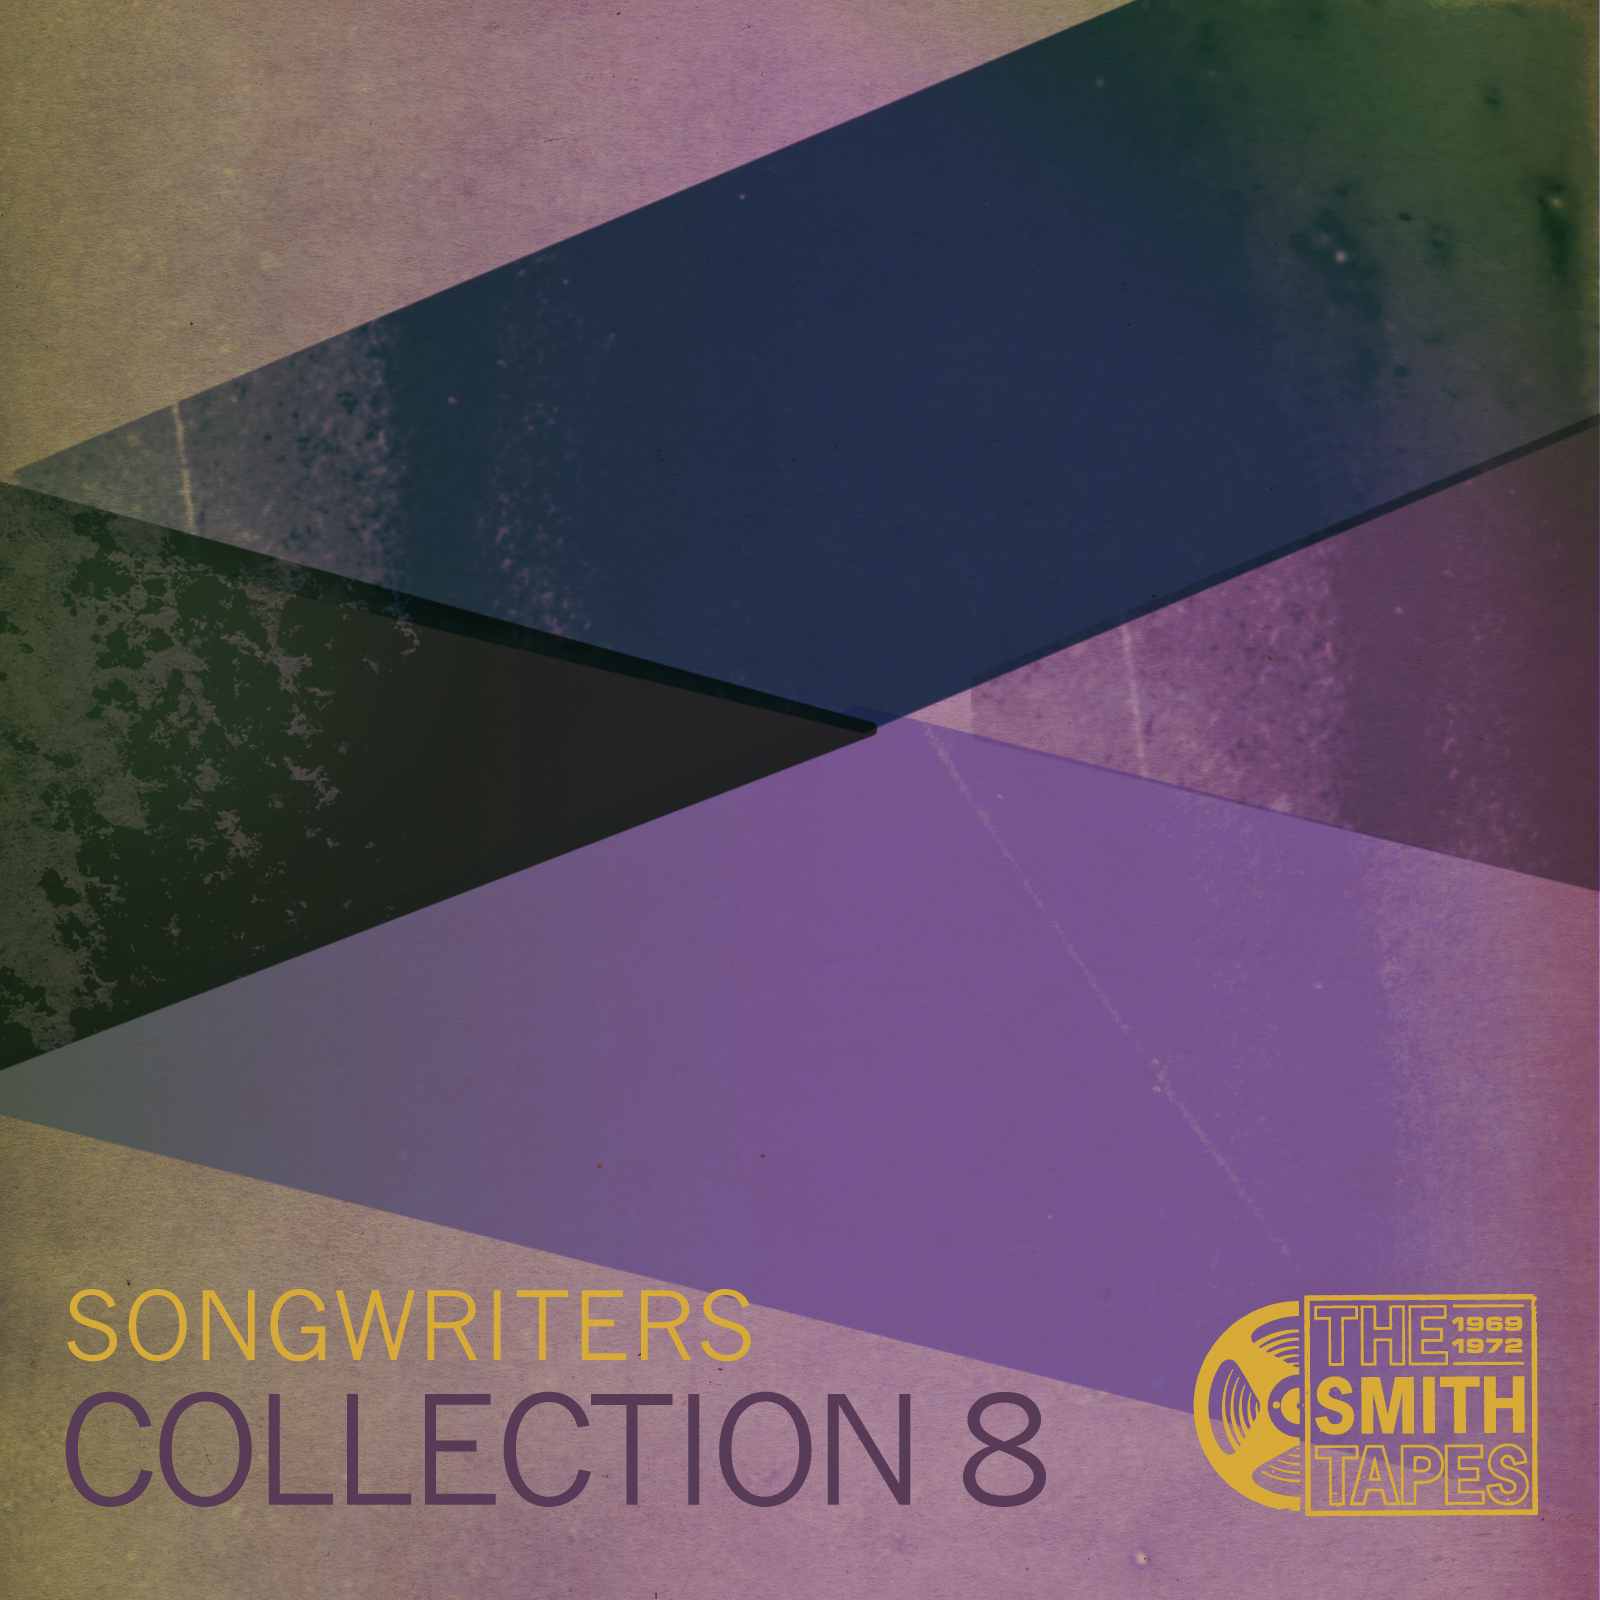 Caption: Collection 8 - Songwriters, Credit: Masaki Koike